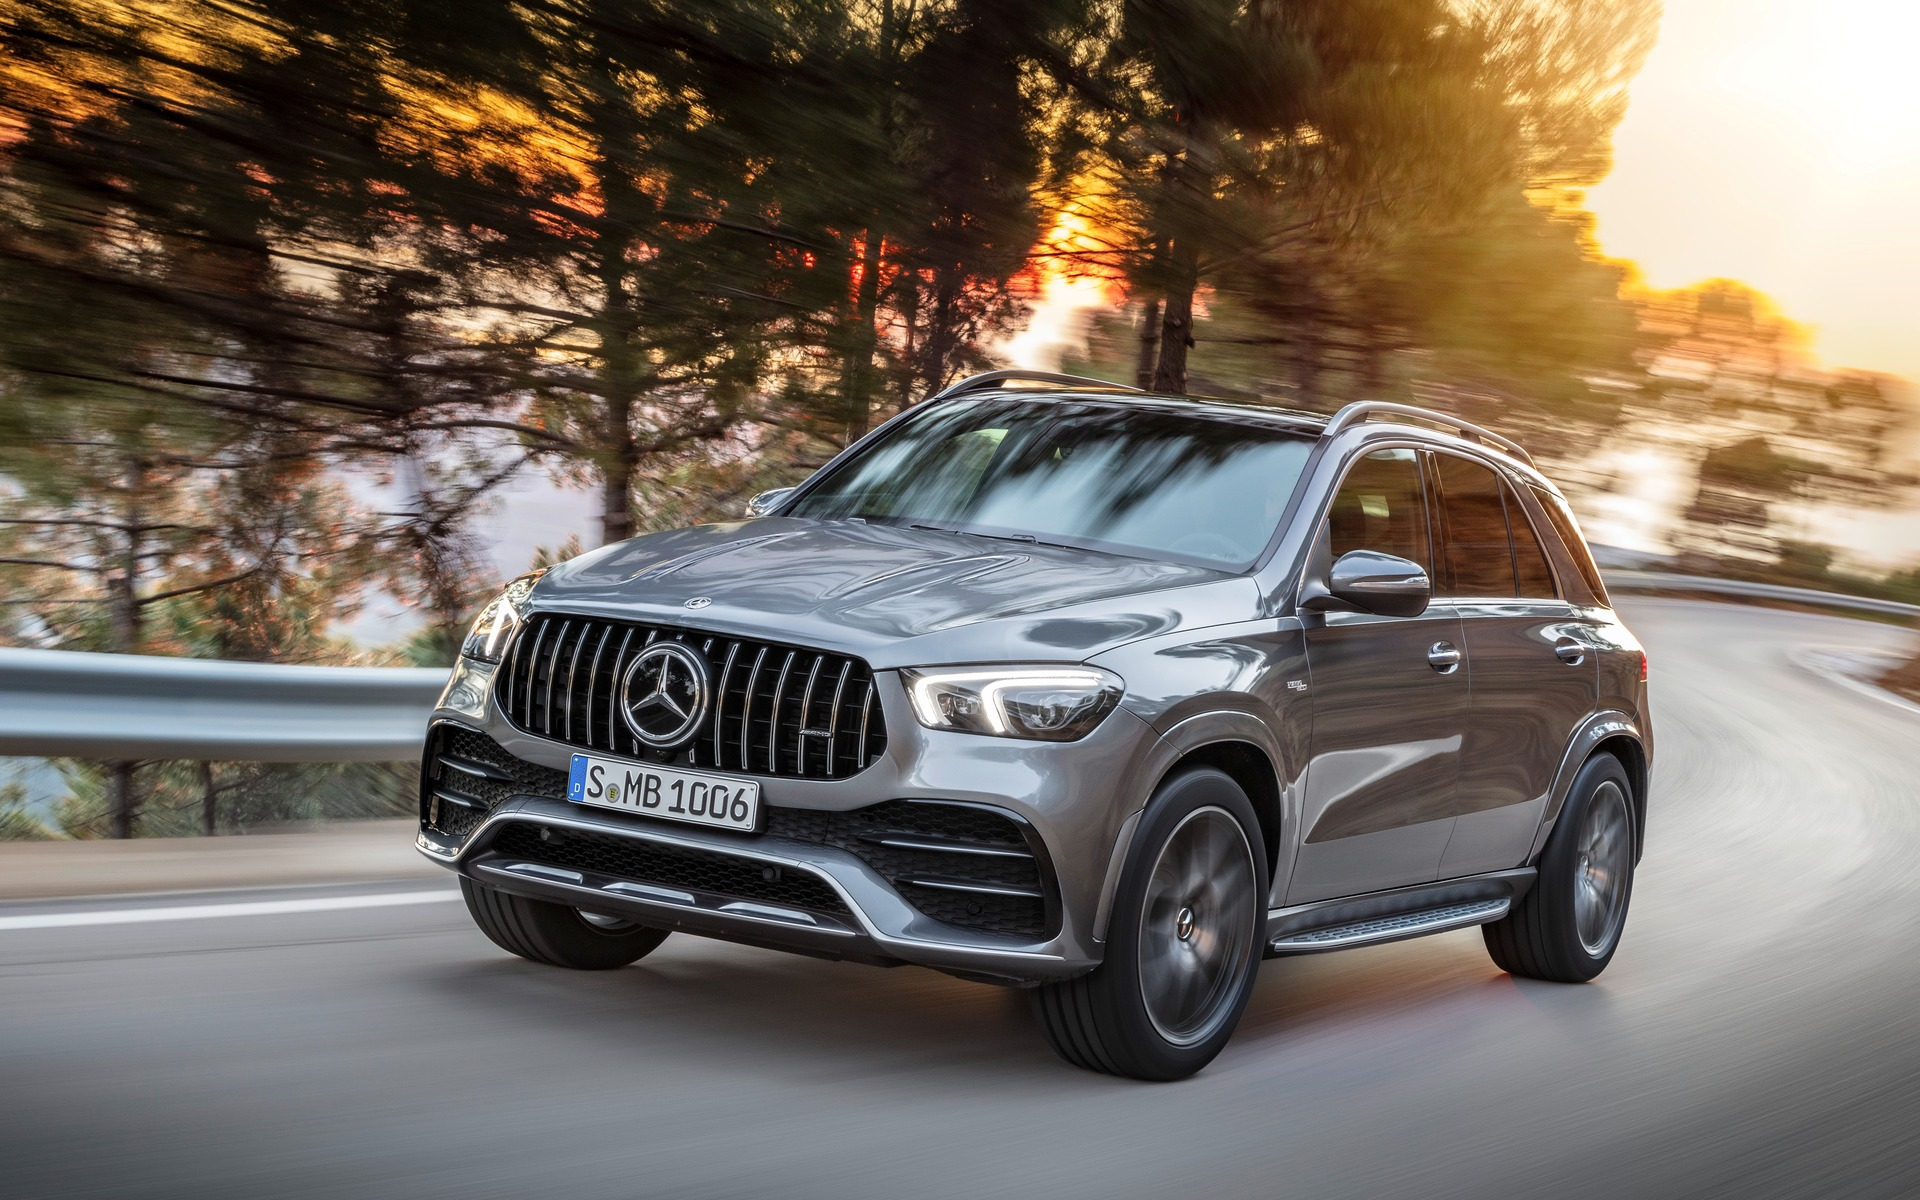 The 2020 Mercedes-AMG GLE 53 4MATIC+ Appears - The Car Guide